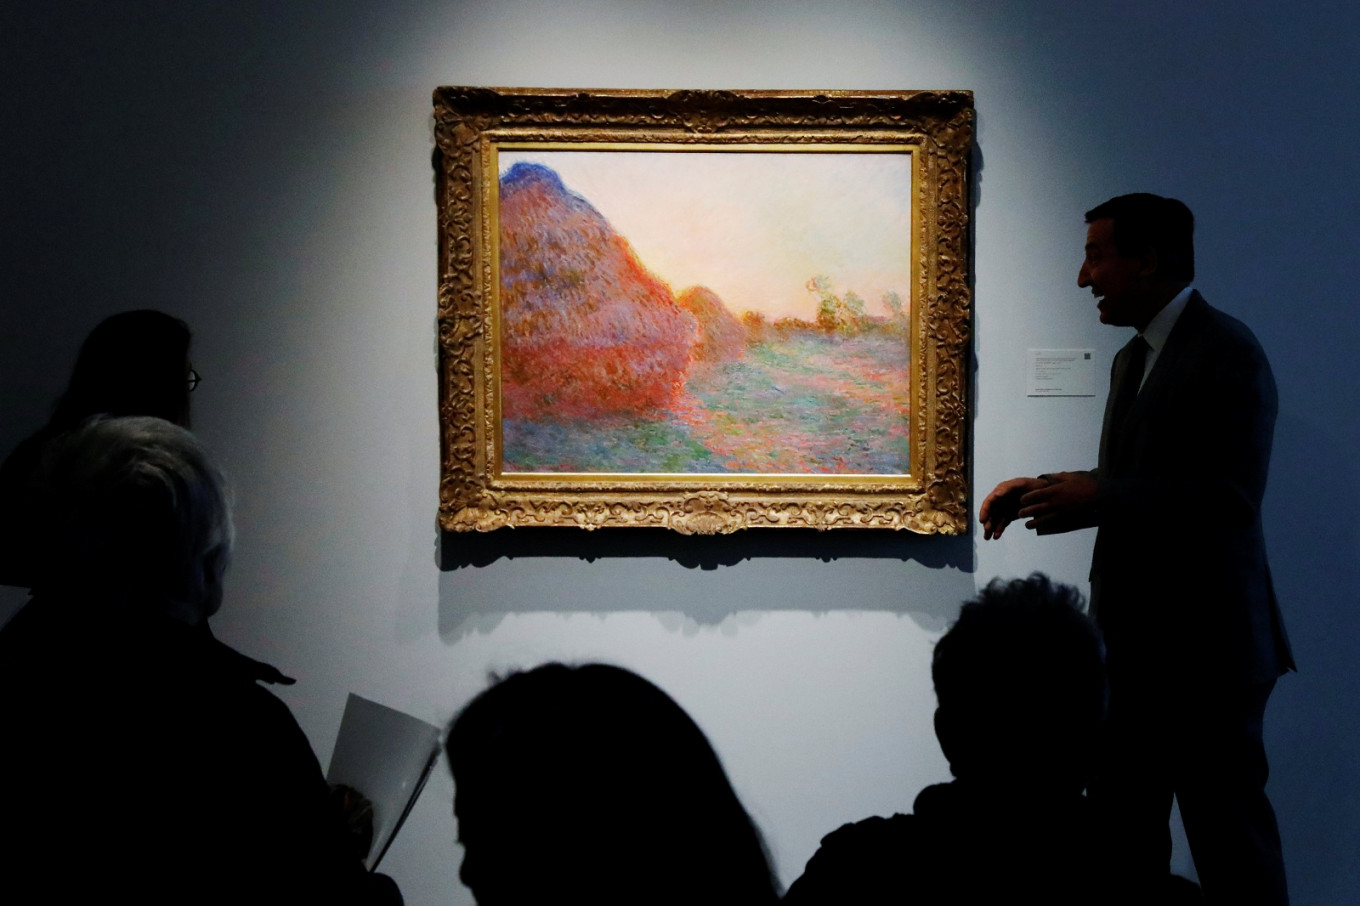 Monet 'Haystacks' painting sells for record $110.7m at auction